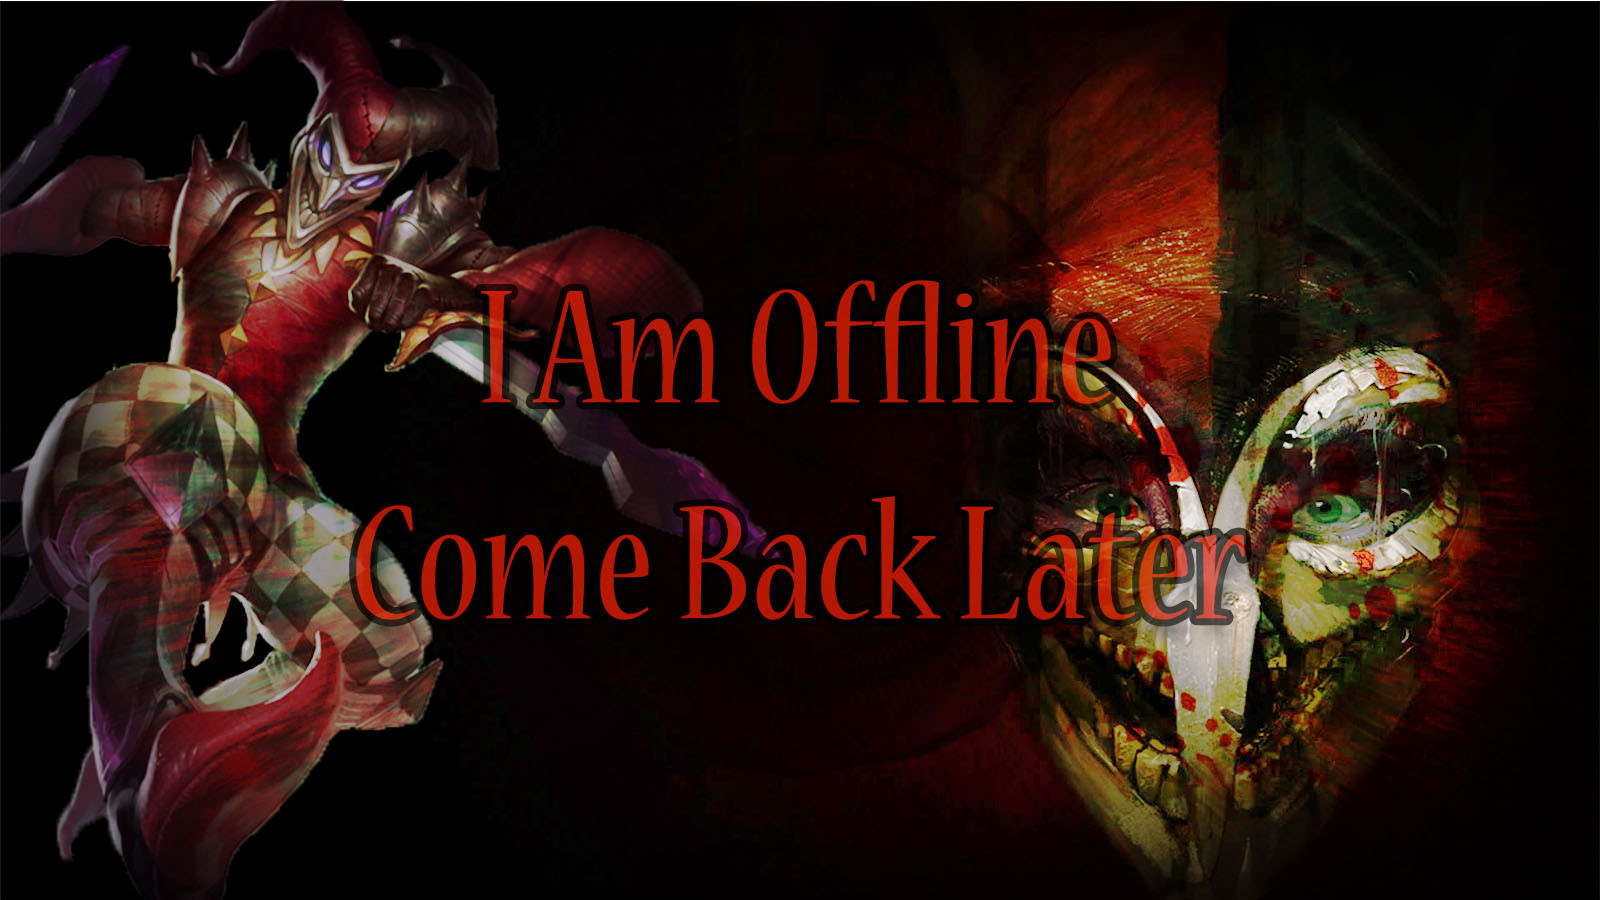 Joe cove offline banner shaco